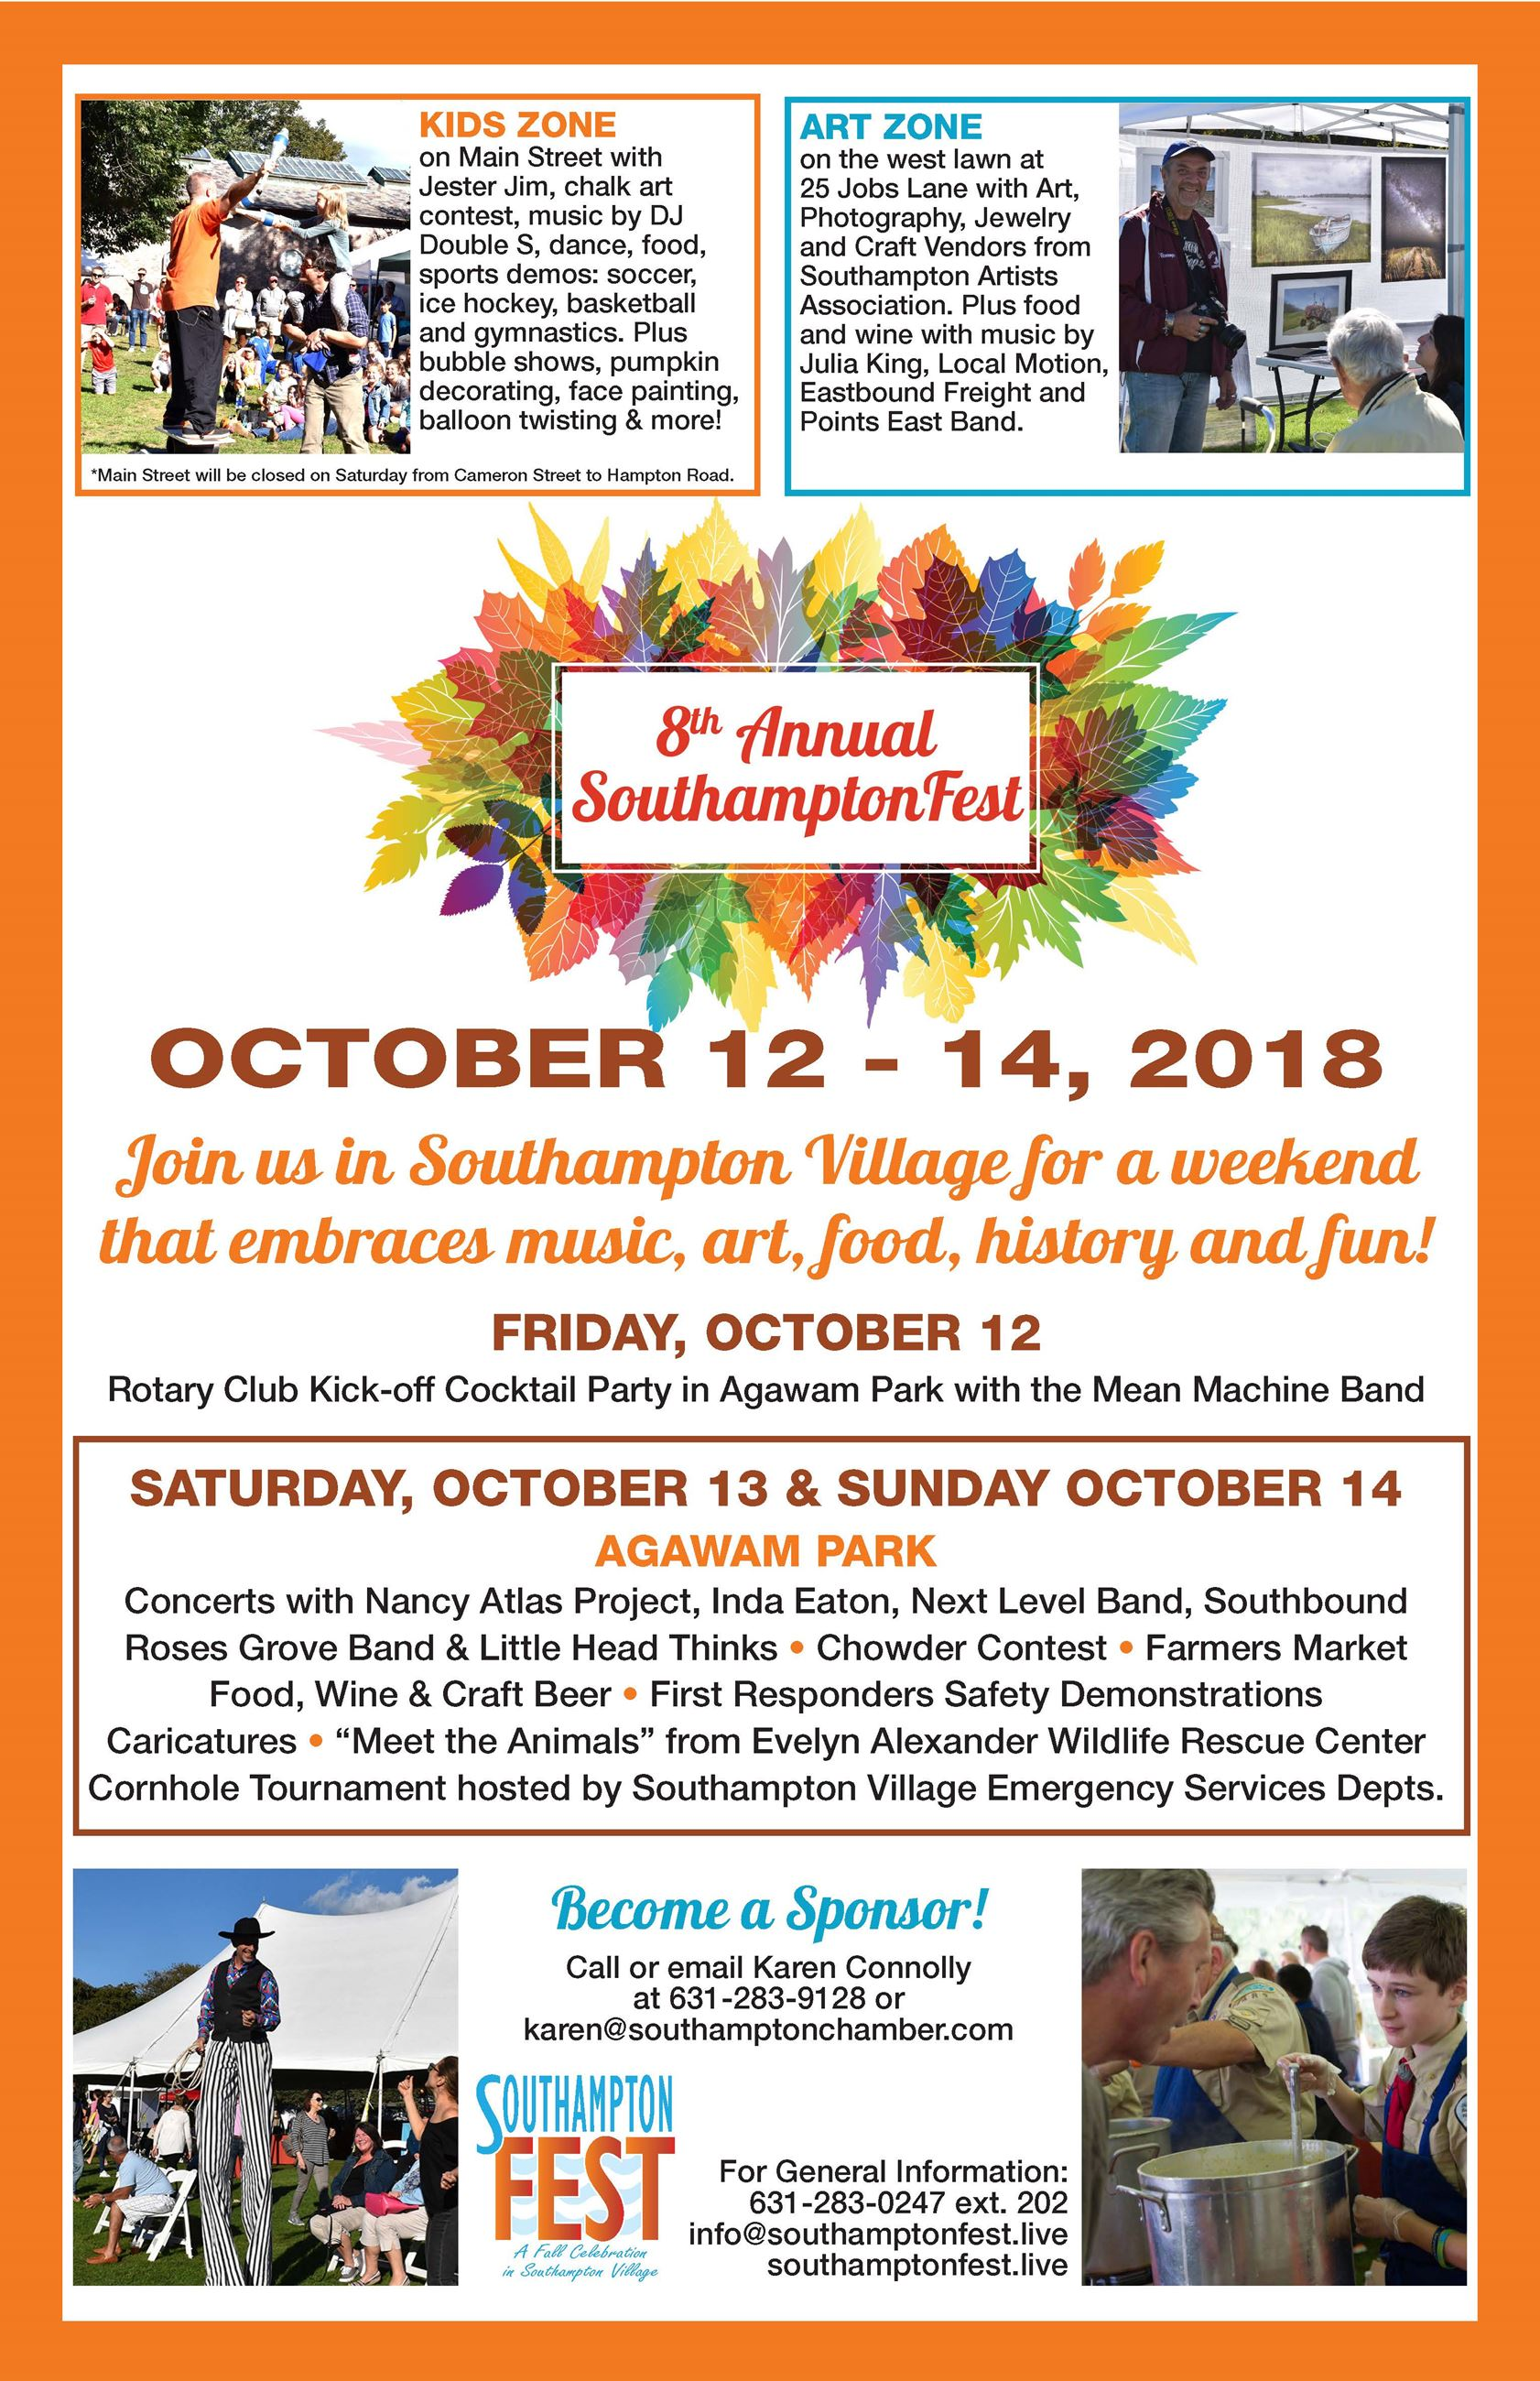 Image of SouthamptonFest poster